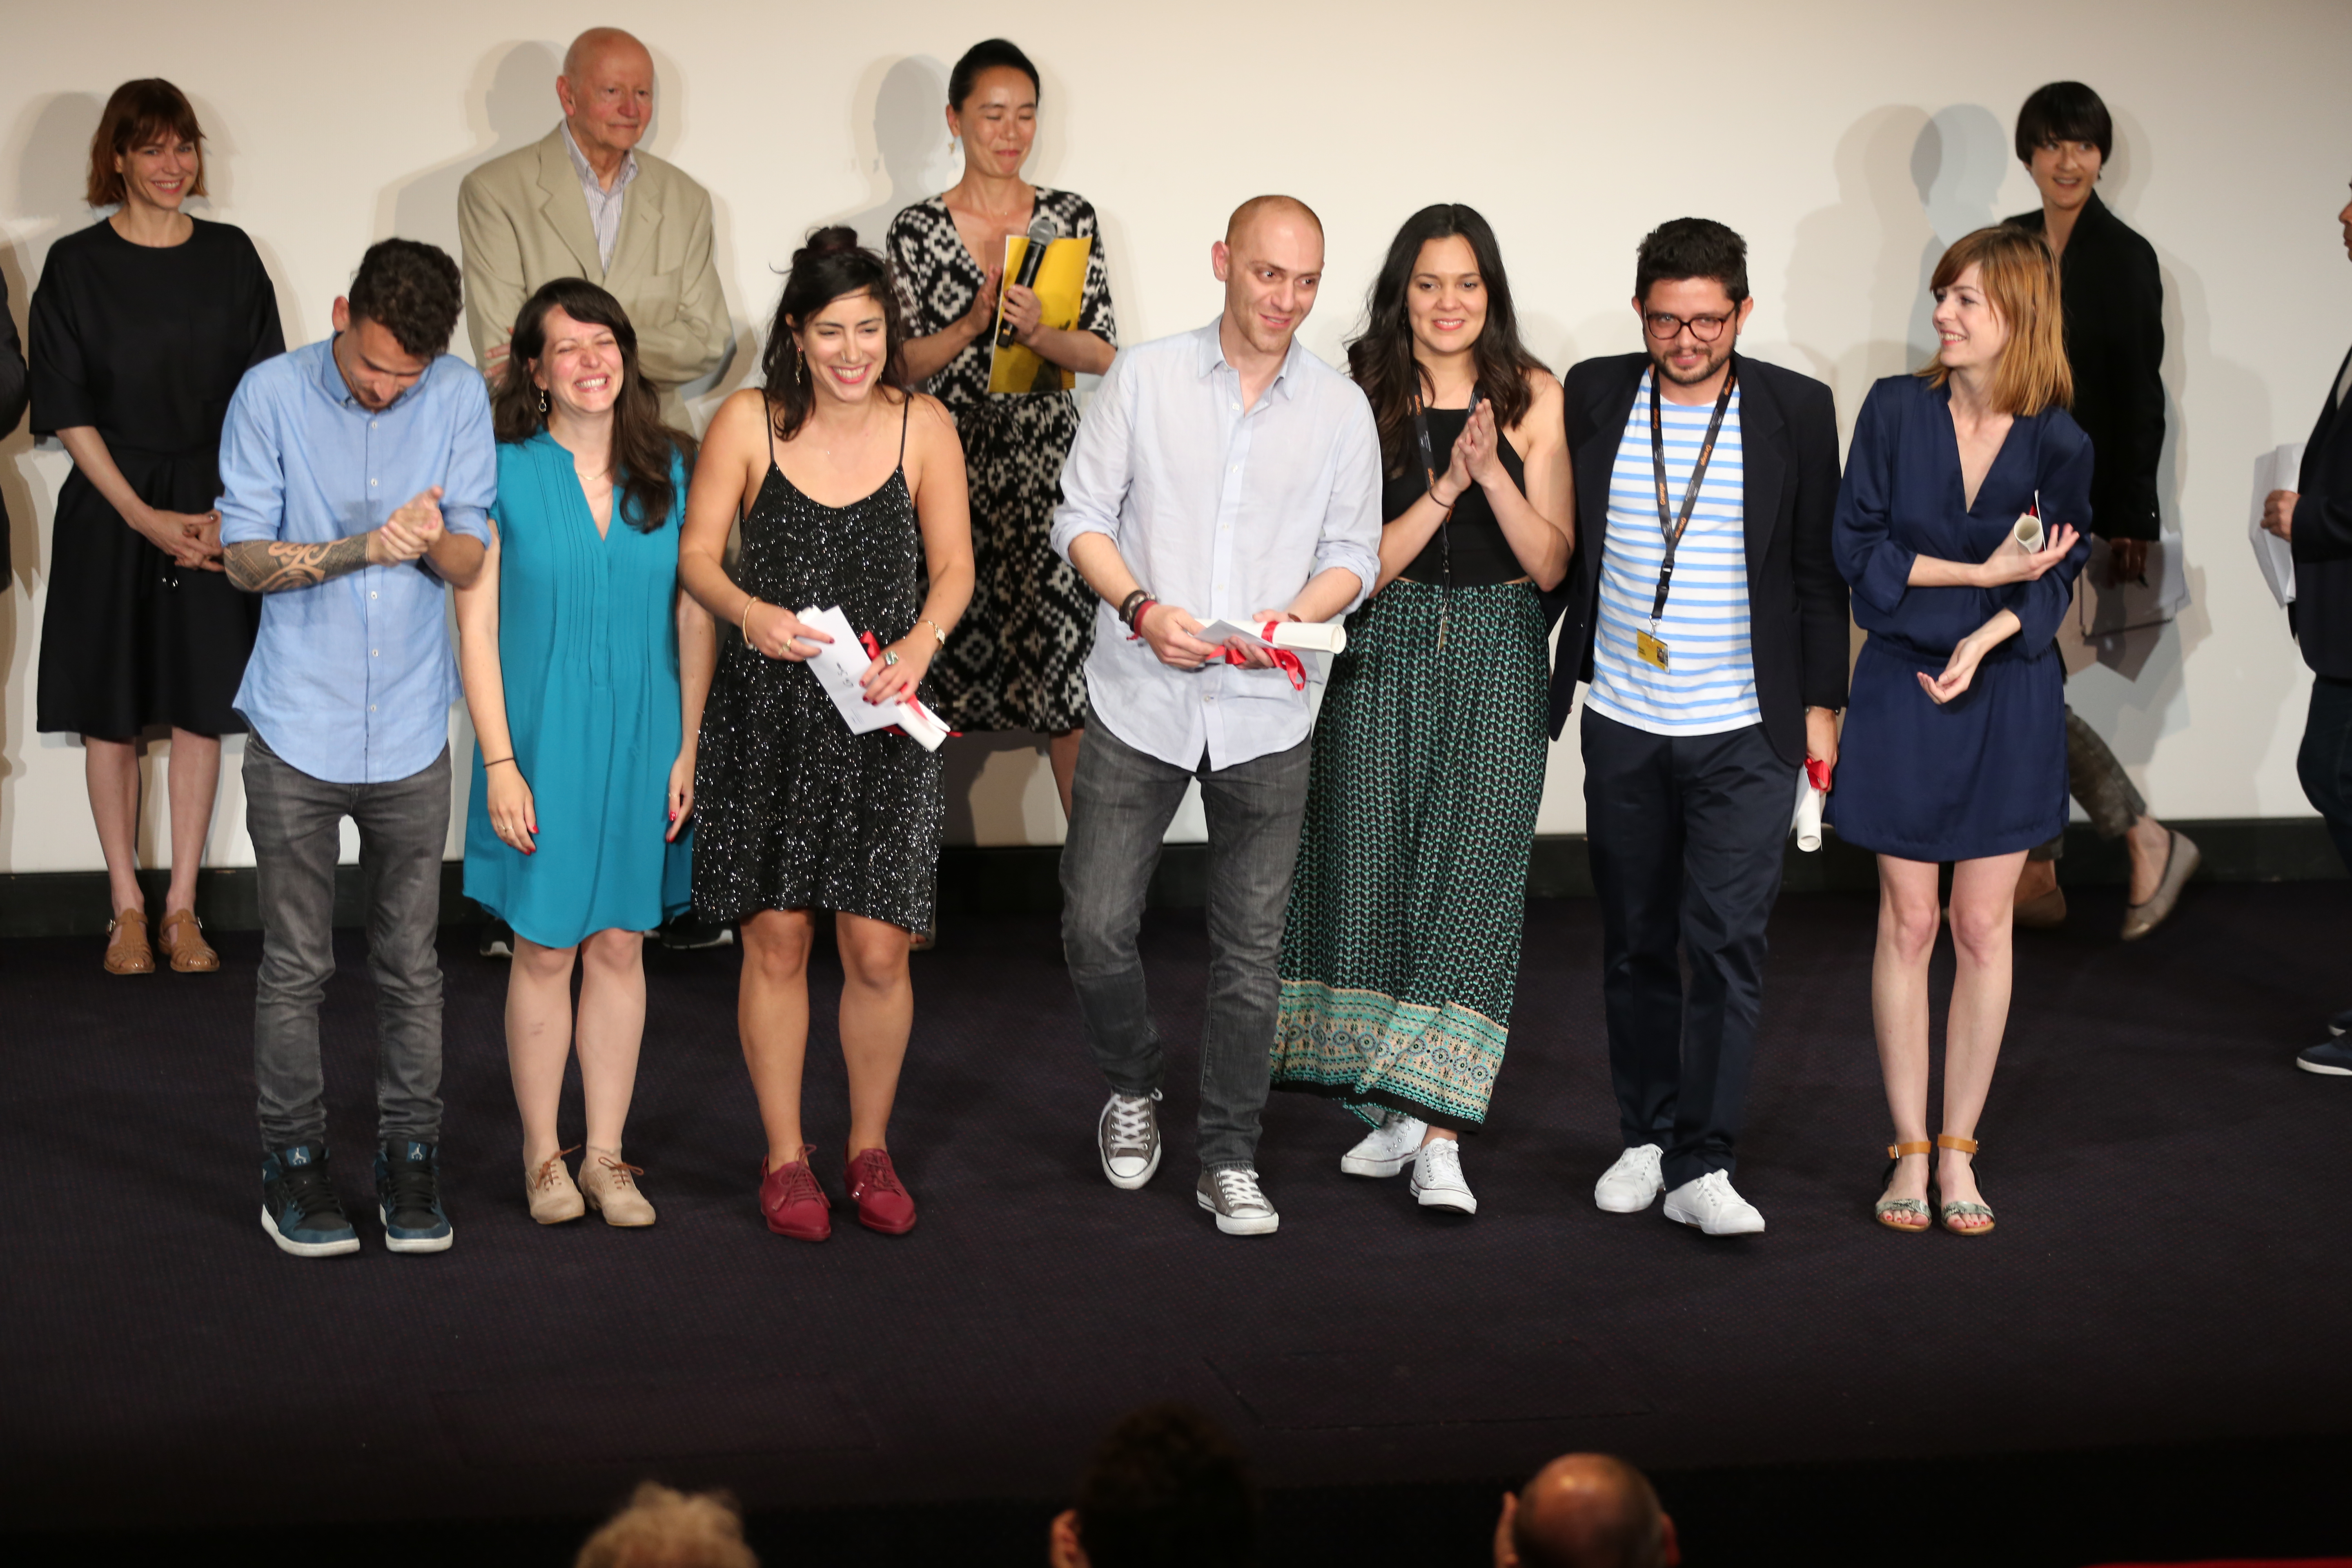 Gilles Jacob on stage with the winners of the 2016 Cinéfondation Awards: Or Sinai, Hamid Ahmadi, Michael Labarca and Nadja Andrasev